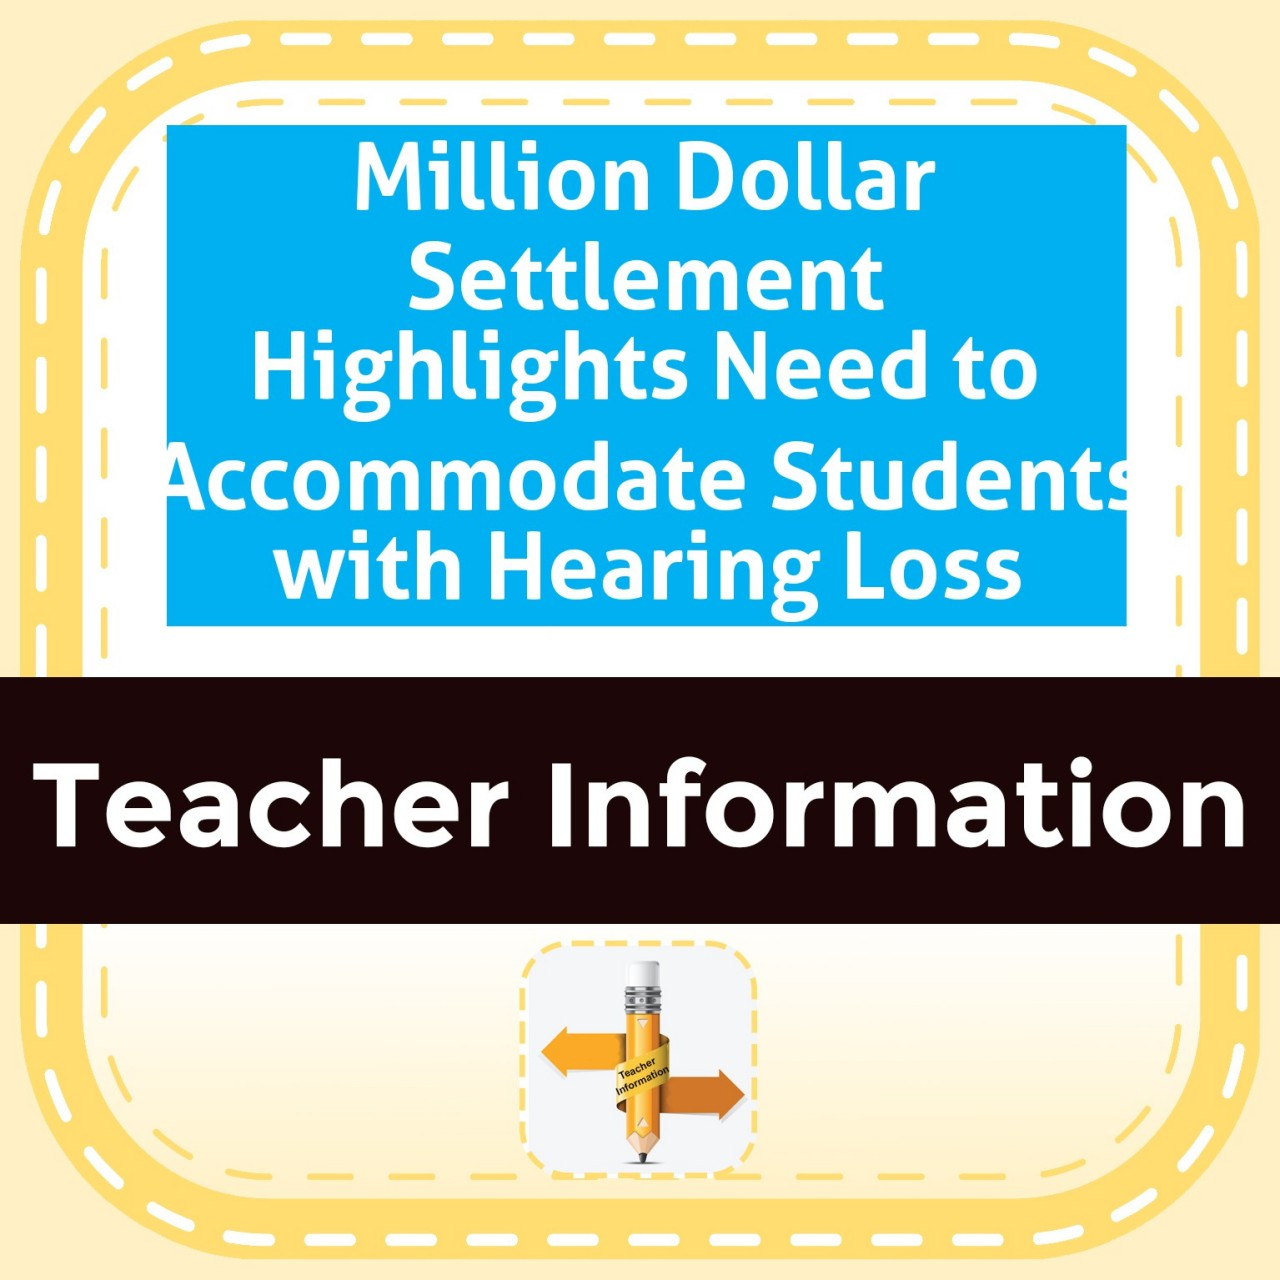 Million Dollar Settlement Highlights Need to Accommodate Students with Hearing Loss